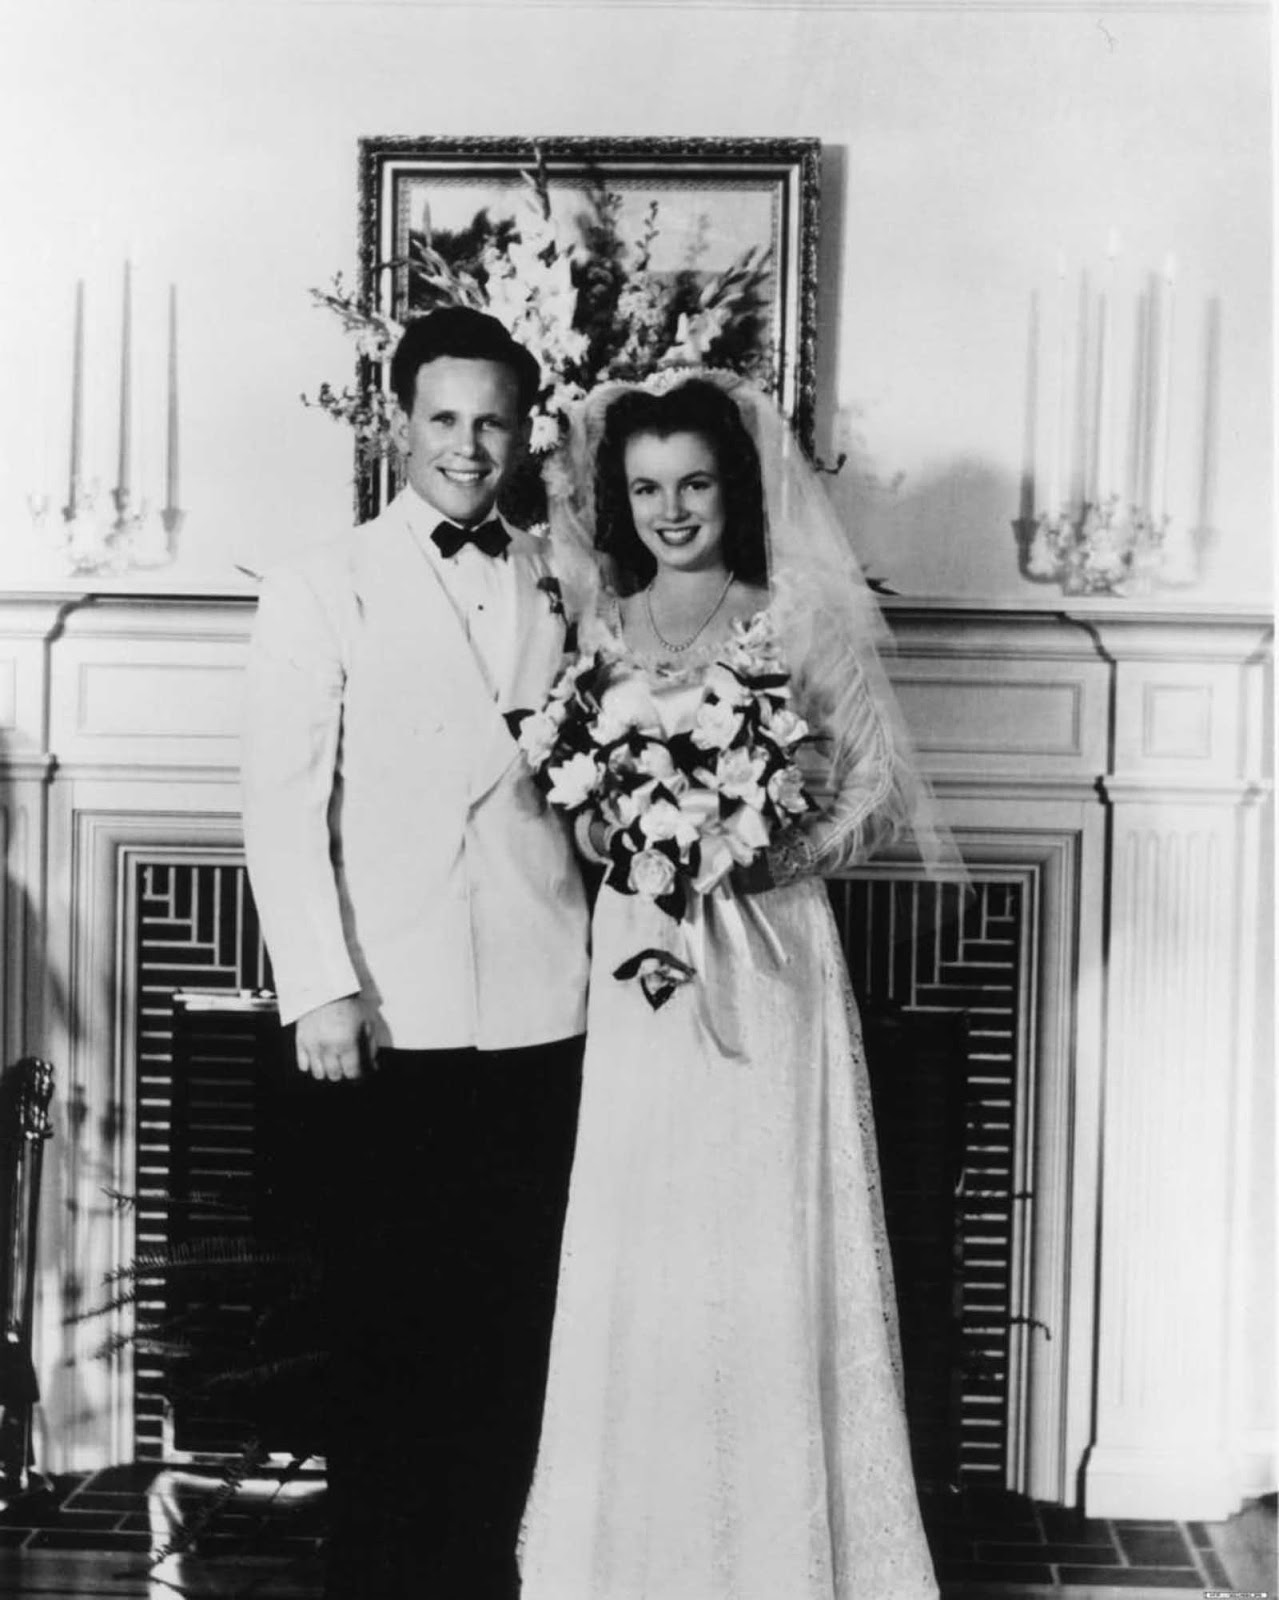 On June 19, 1942, the couple was married.The wedding was officiated by a minister, Norma Jeane wore an embroidered lace wedding dress with long sleeves and veil.